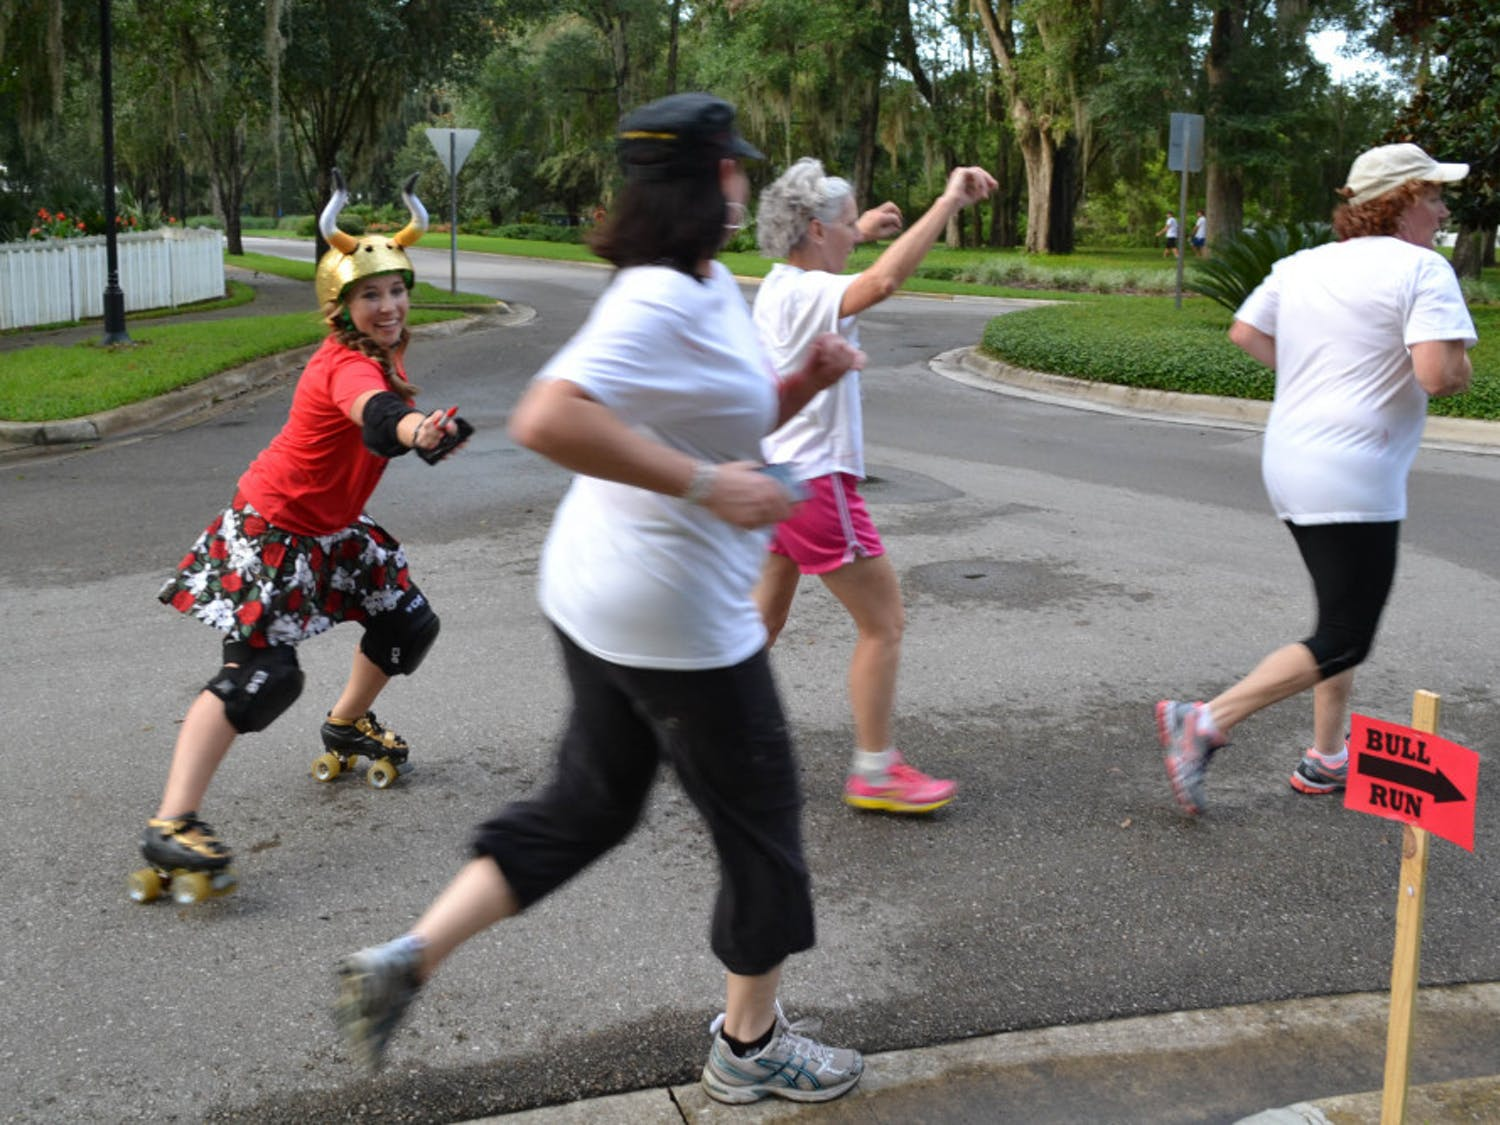 Lily Woodard, who goes by the derby name Slang Blade, chases a group of runners during the Bull Run 5K.